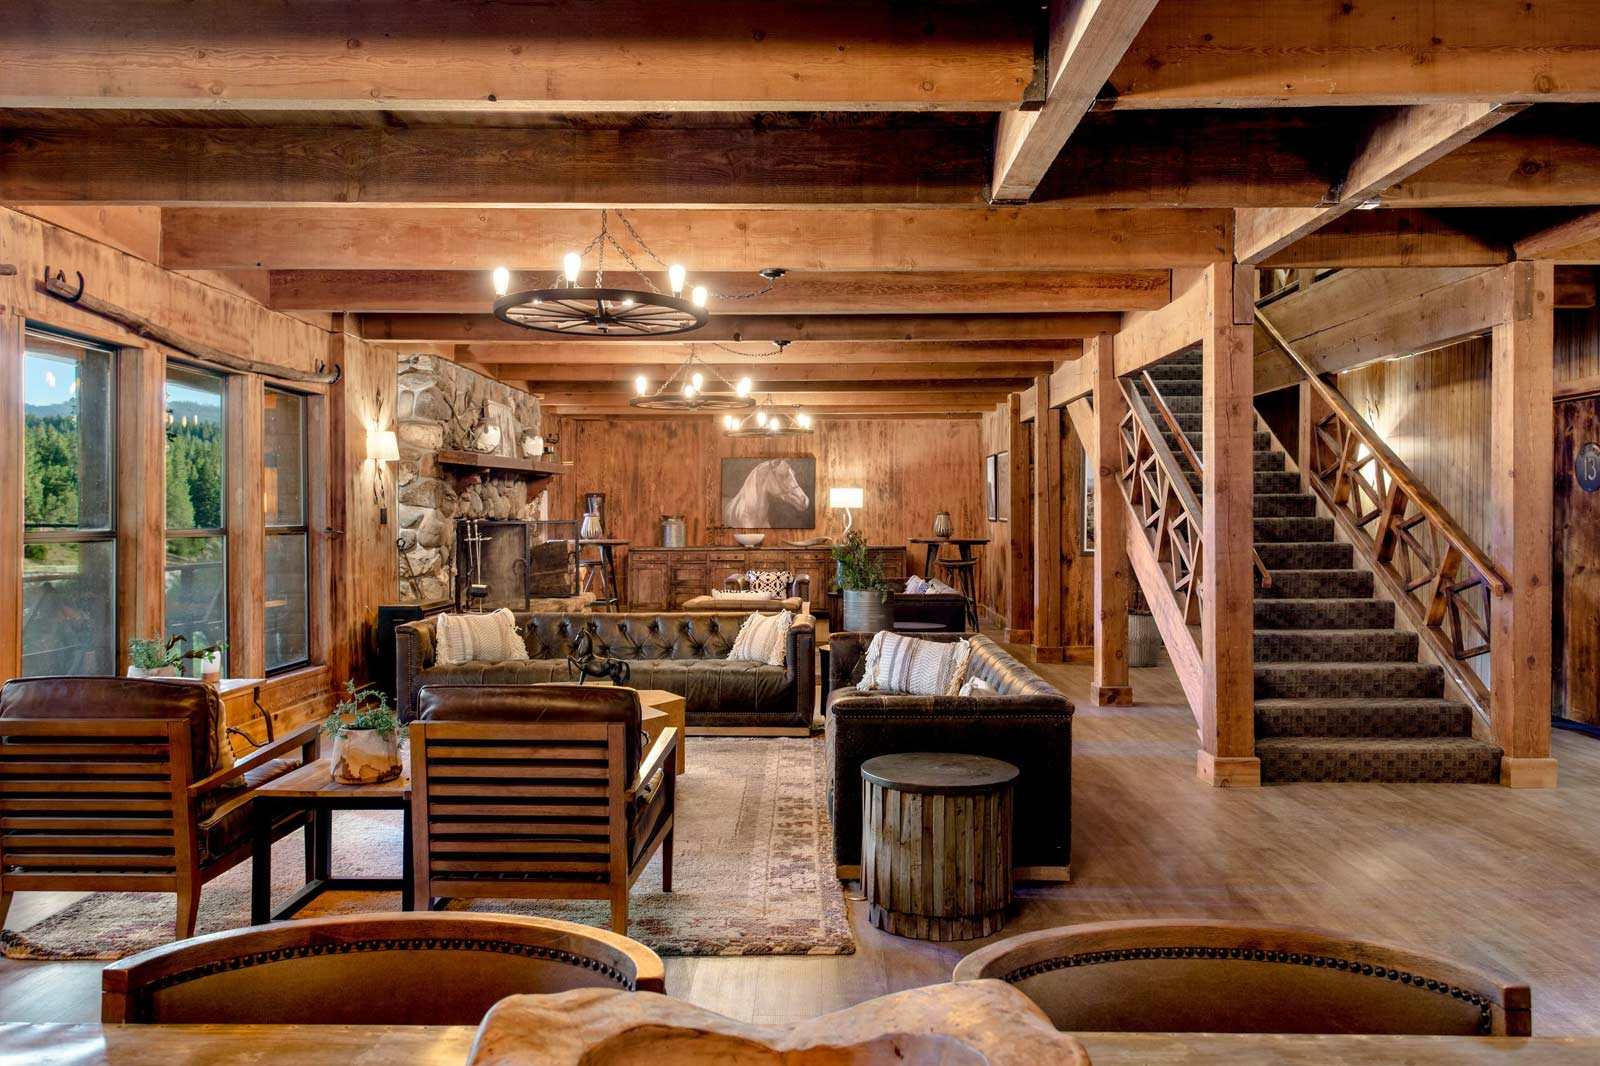 Interior of the beautiful rustic Greenhorn Ranch Lodge.